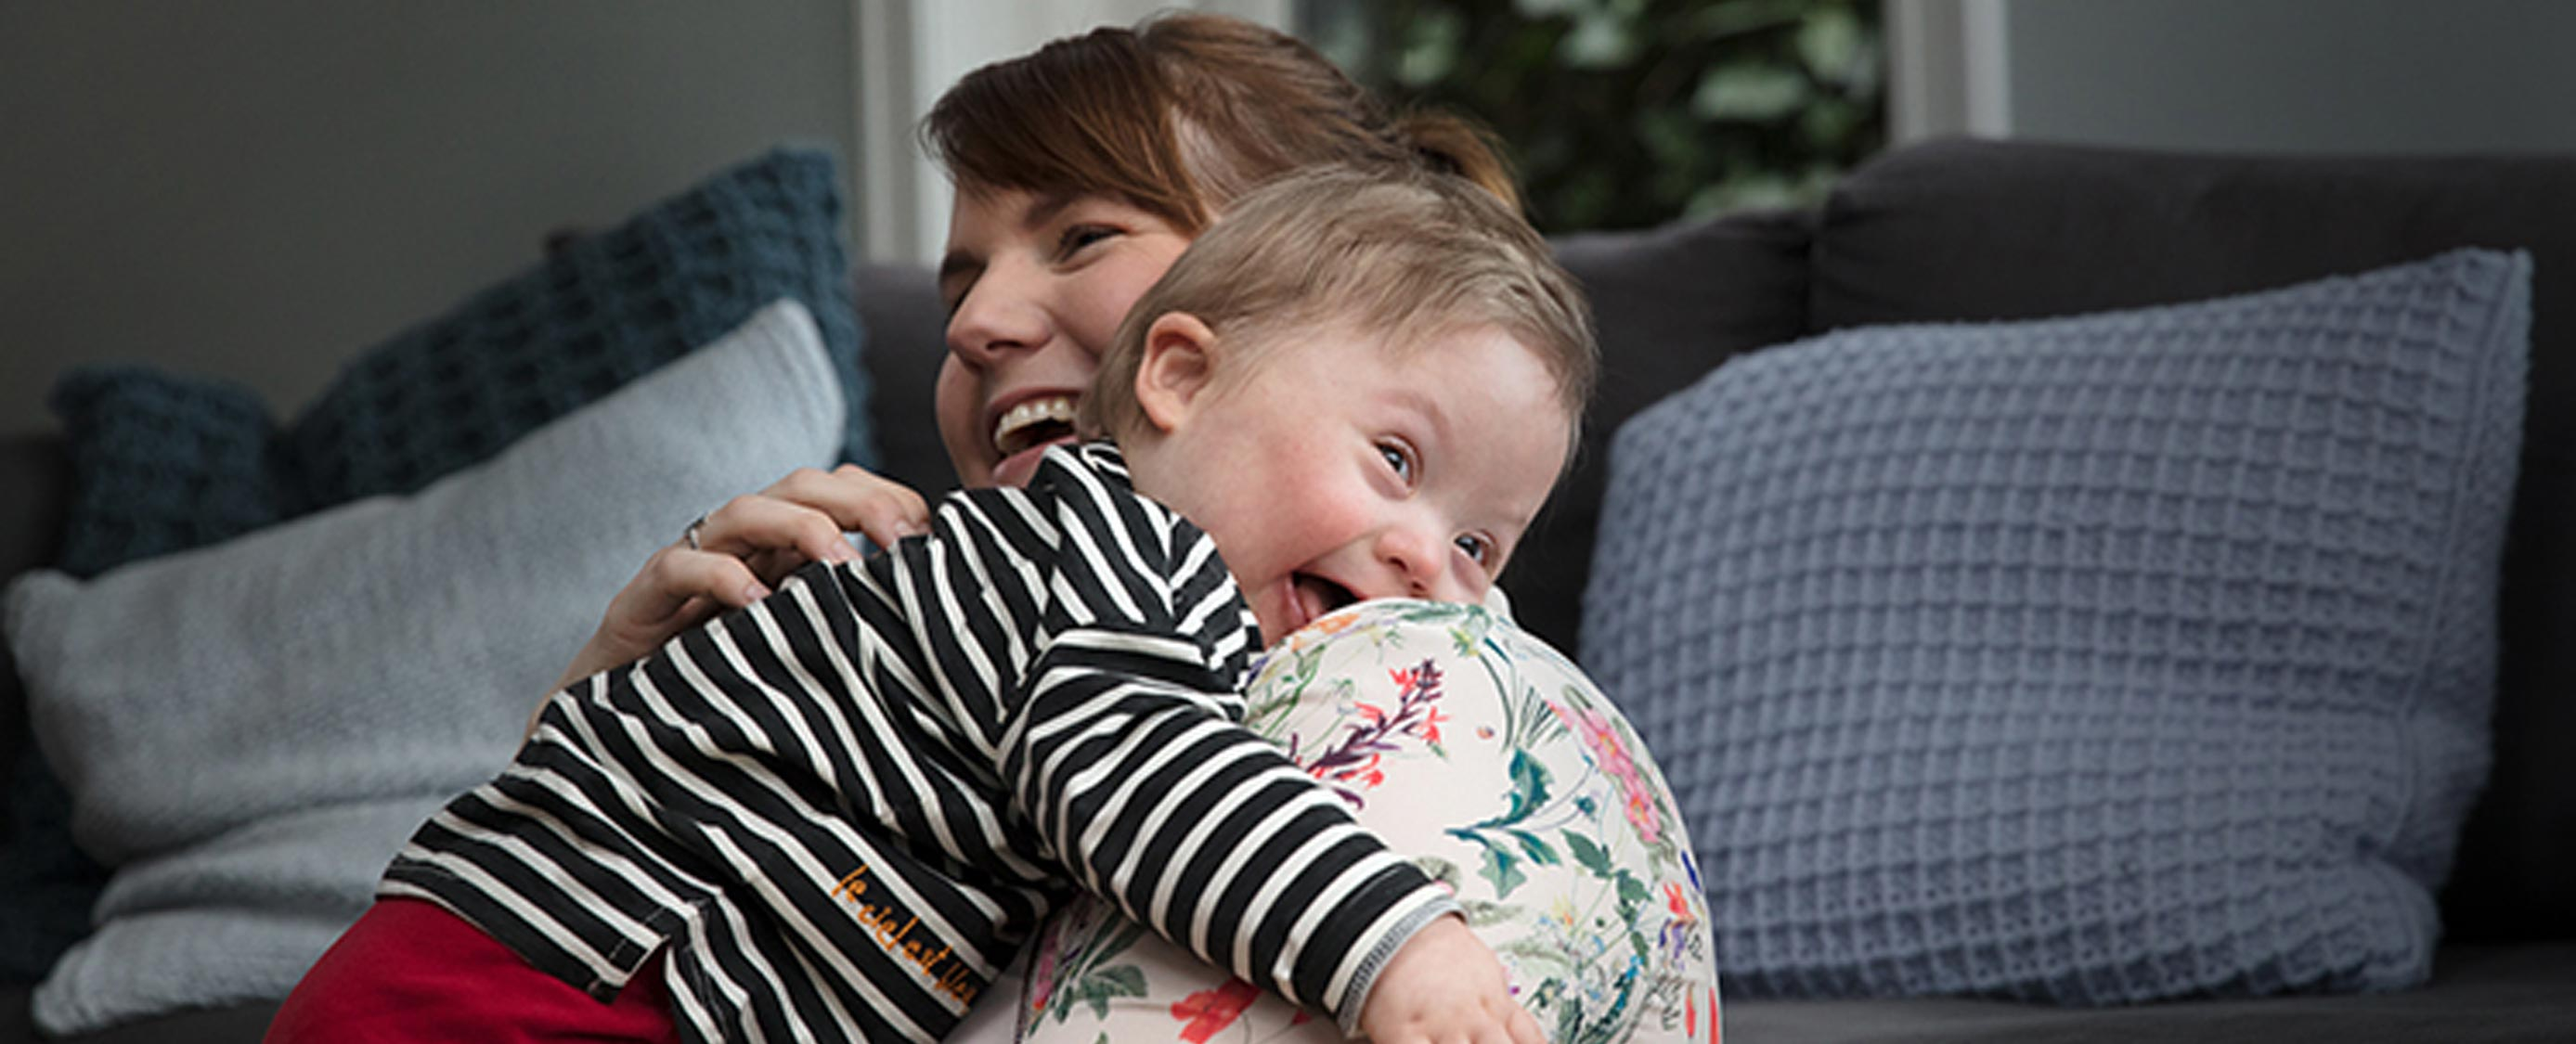 Mother Hugging a Smiling Baby on a Sofa